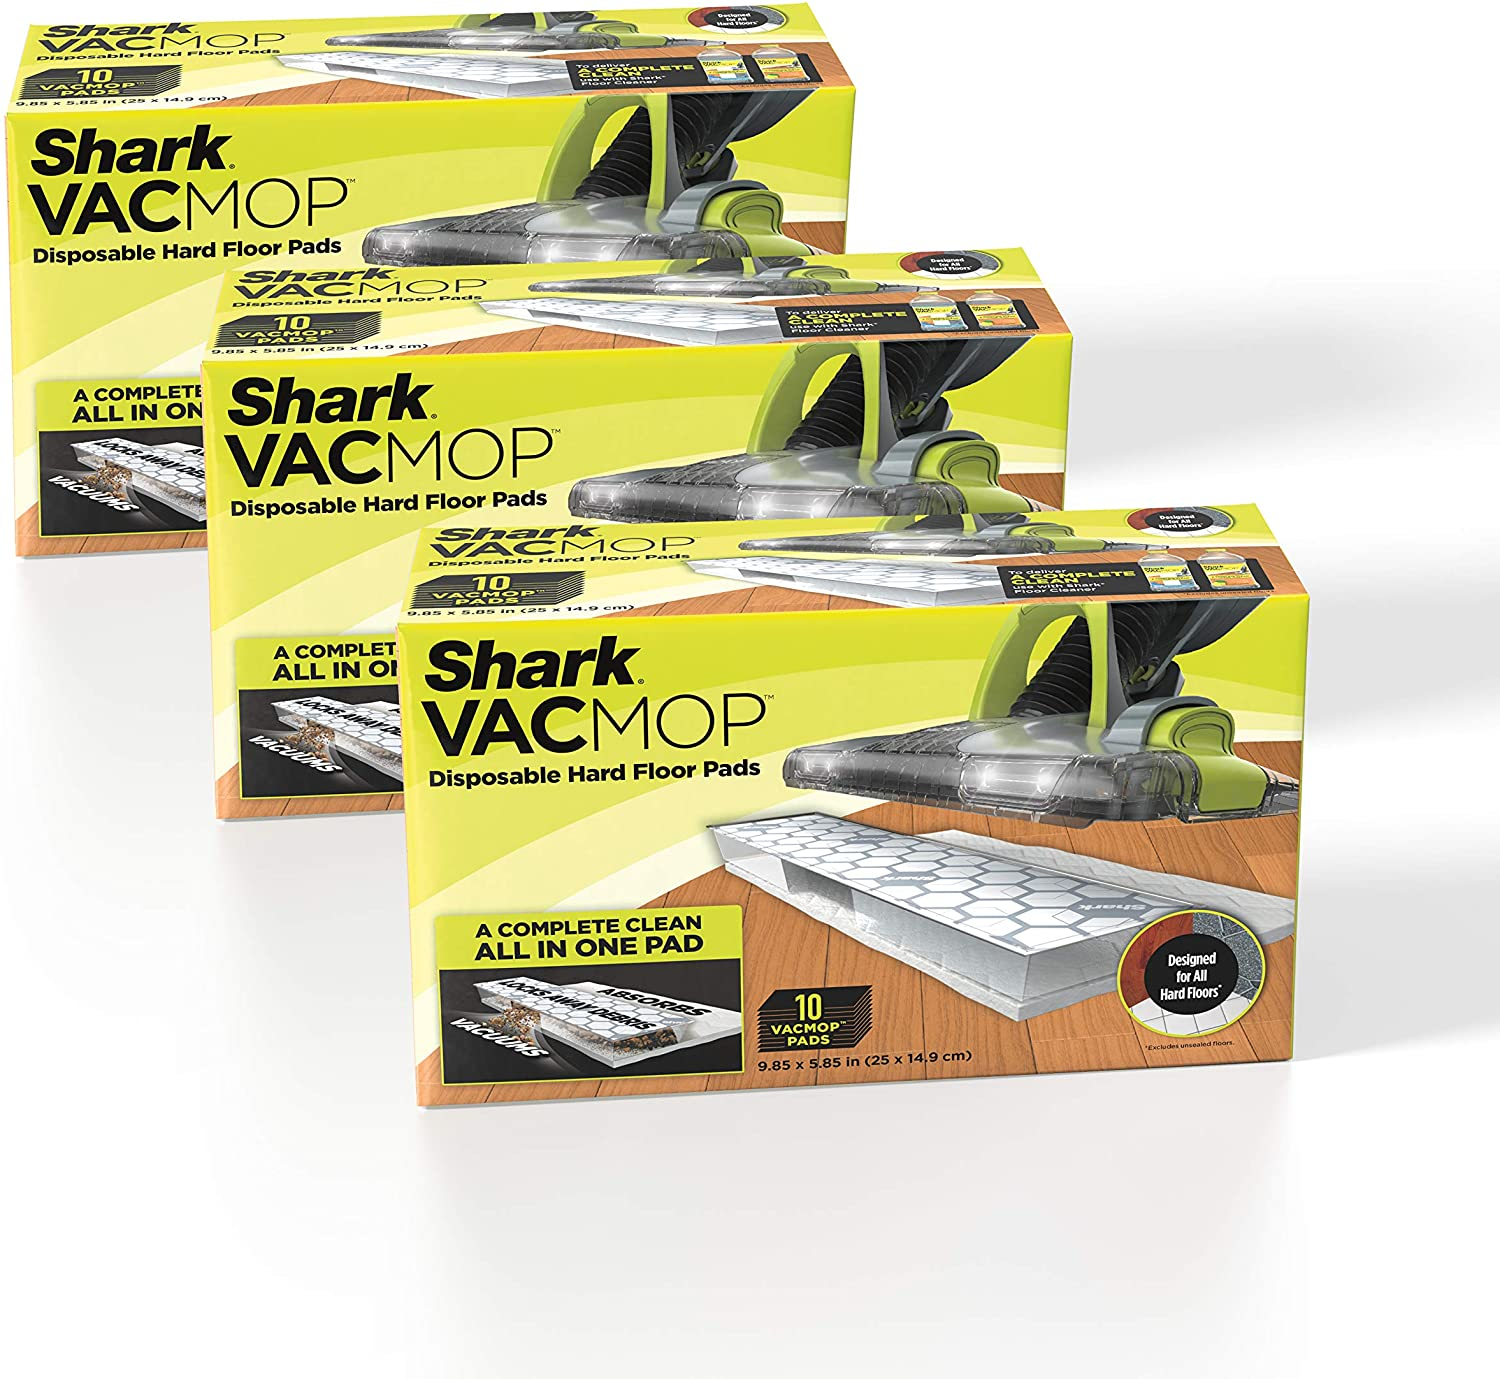 Shark VMP30 VACMOP Disposable Hard Floor Vacuum and Mop Pad Refills, 30 Count, White: Home & Kitchen